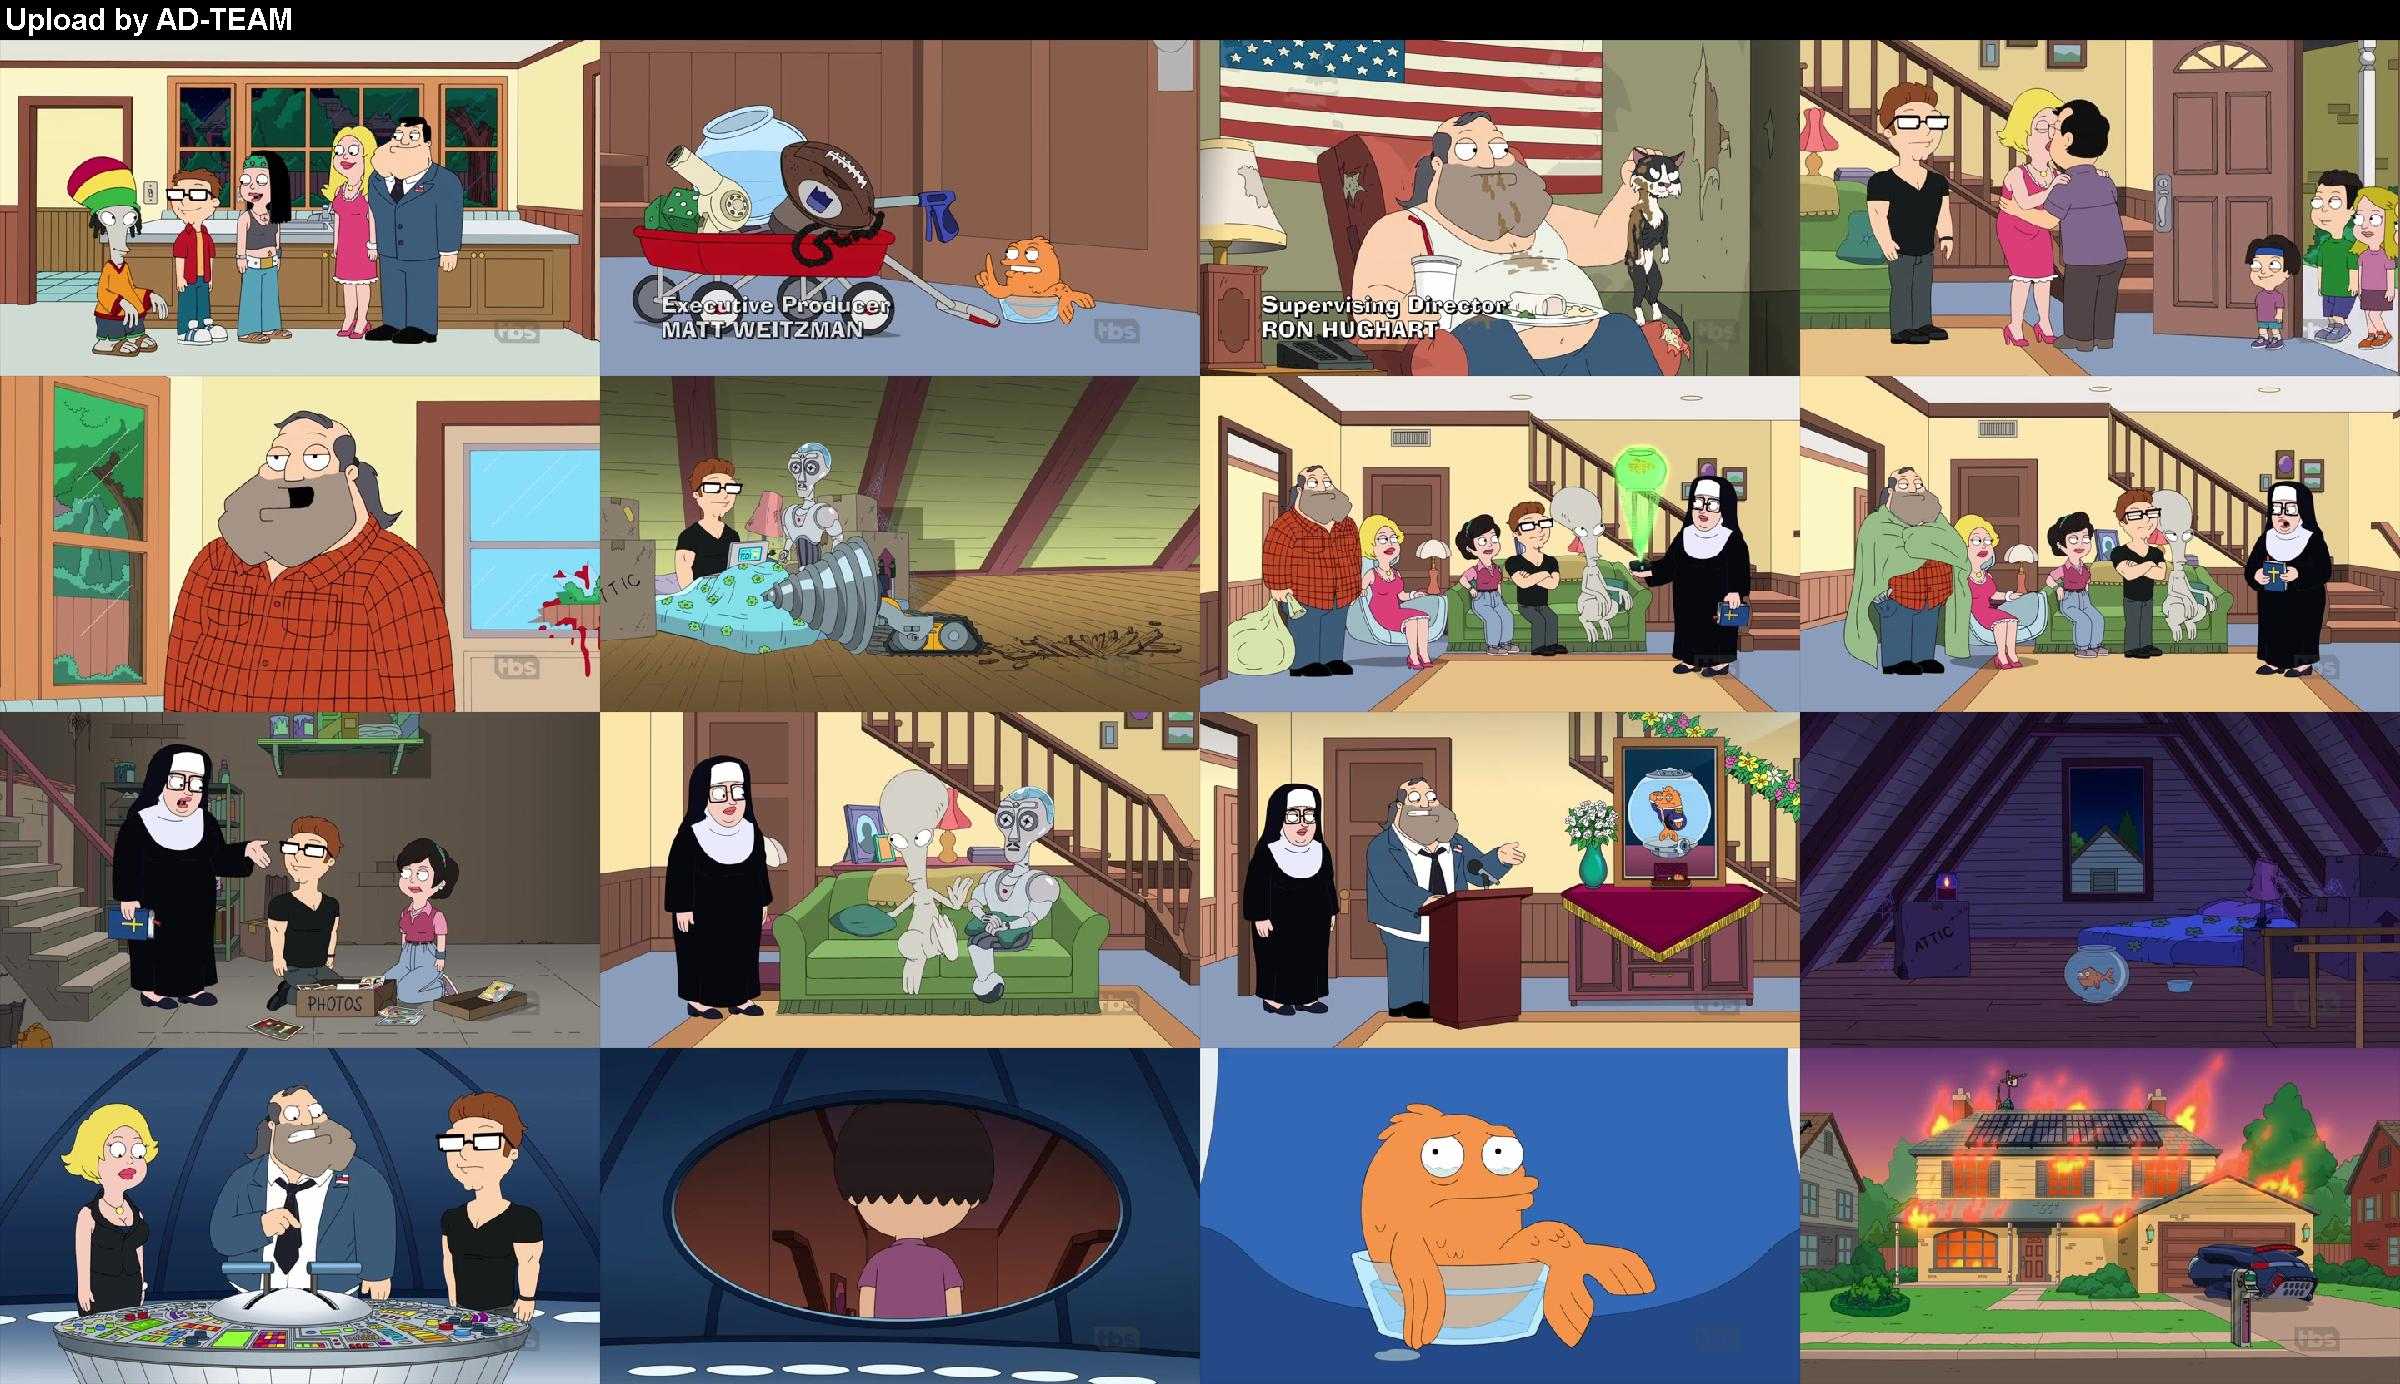 American Dad S15e18 Webrip X264 tbs | Free eBooks Download